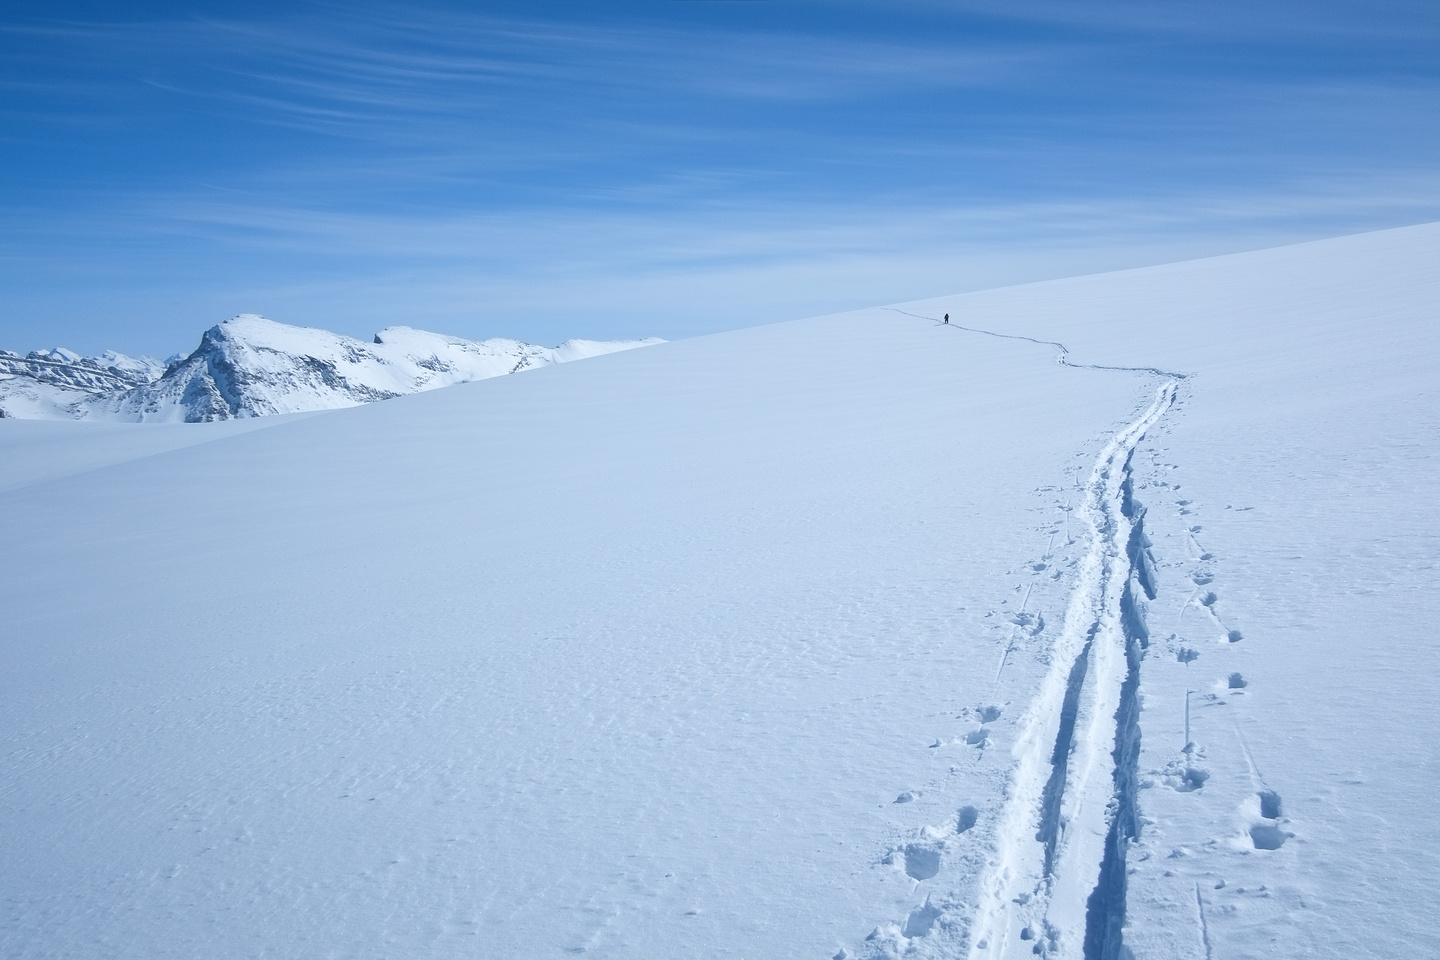 There is a slight ascent on the way back to the Bow Hut. Not bad, but I skinned up for it.